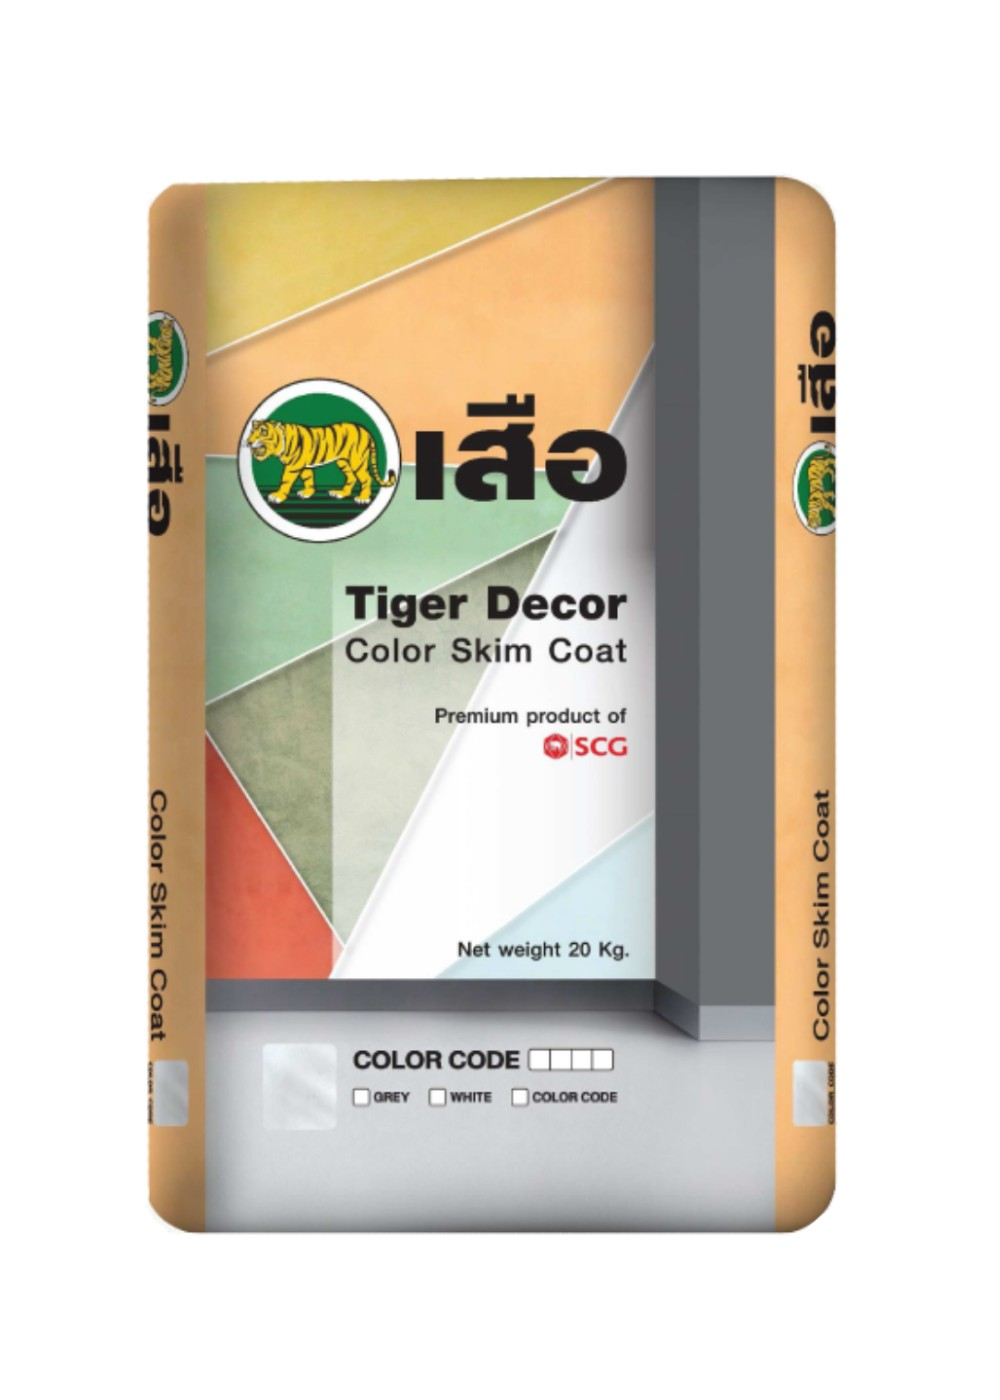 Tiger Decor Color Skim Coat